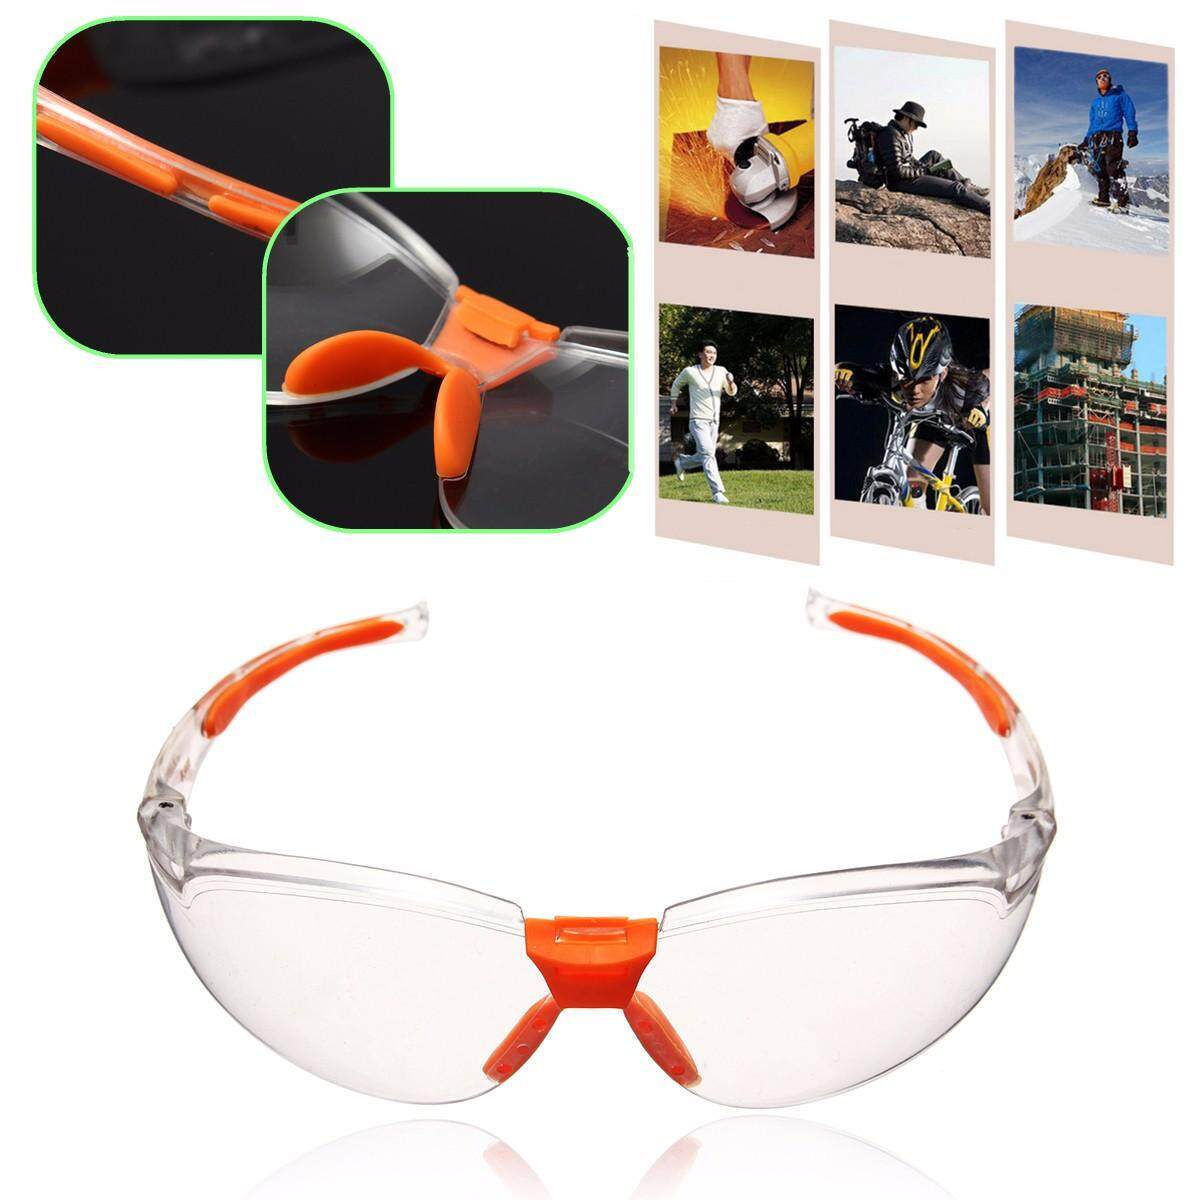 15pcs Safety Welding Cycling Riding Driving Glasses Sports Sunglasses Protect Goggles